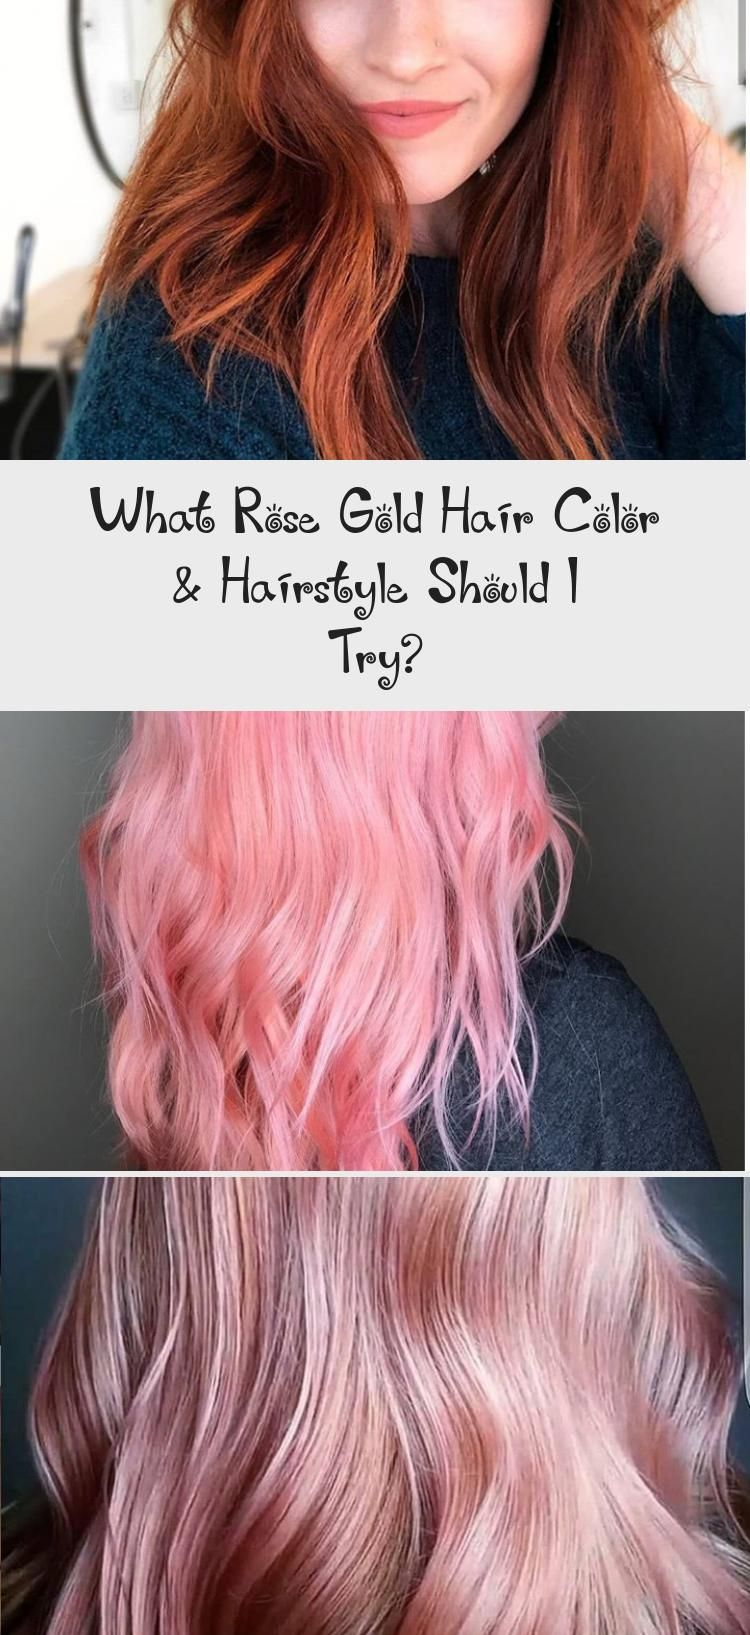 What Rose Gold Hair Color & Hairstyle Should I Try?